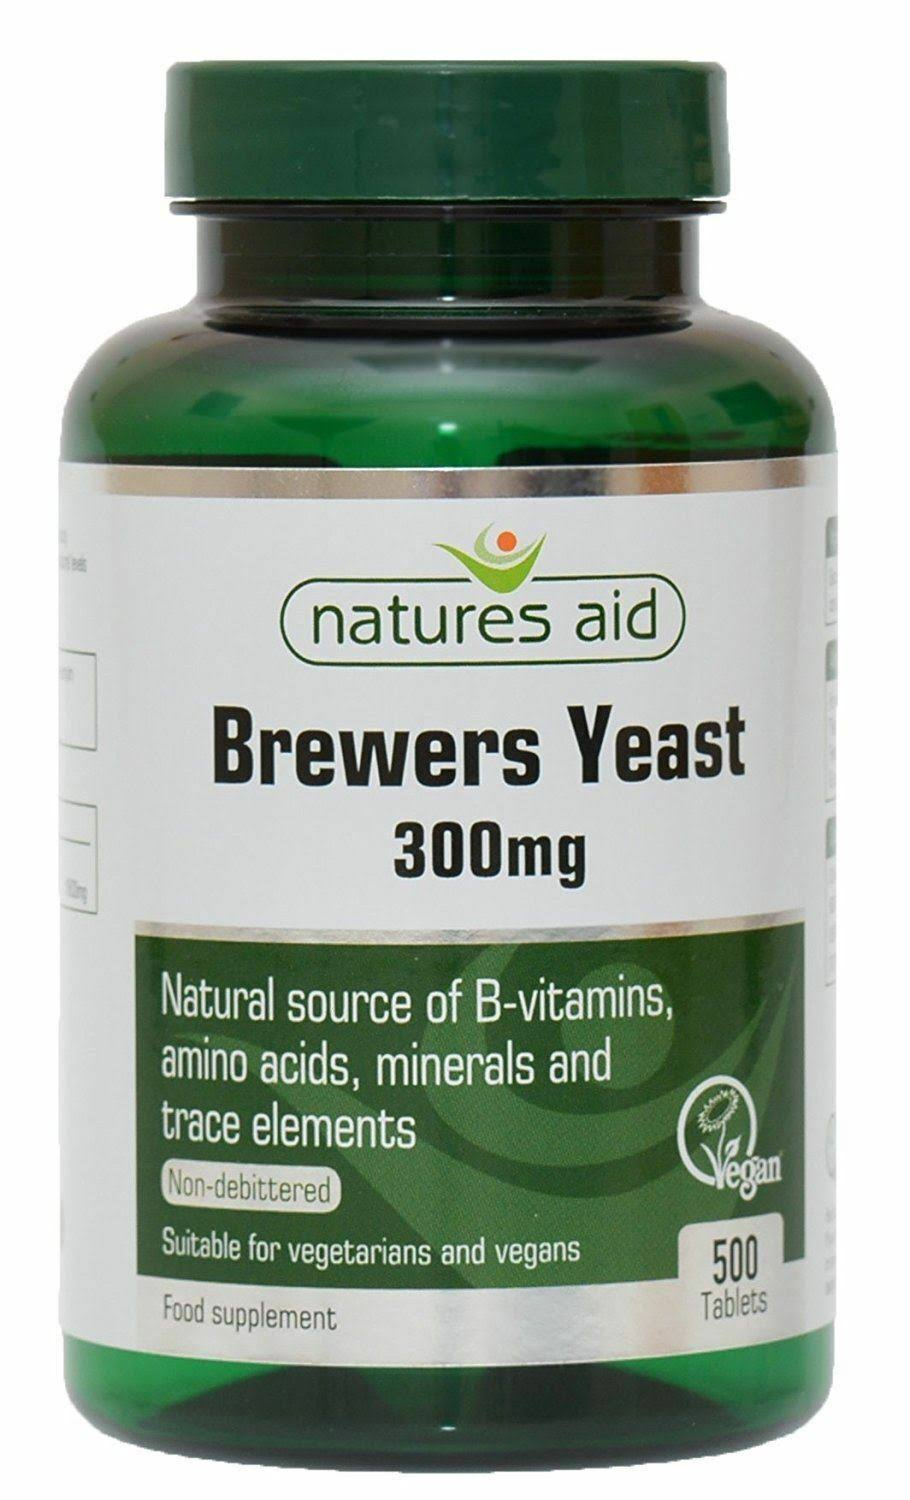 Natures Aid Brewers Yeast Food Supplement - 500 Tablets